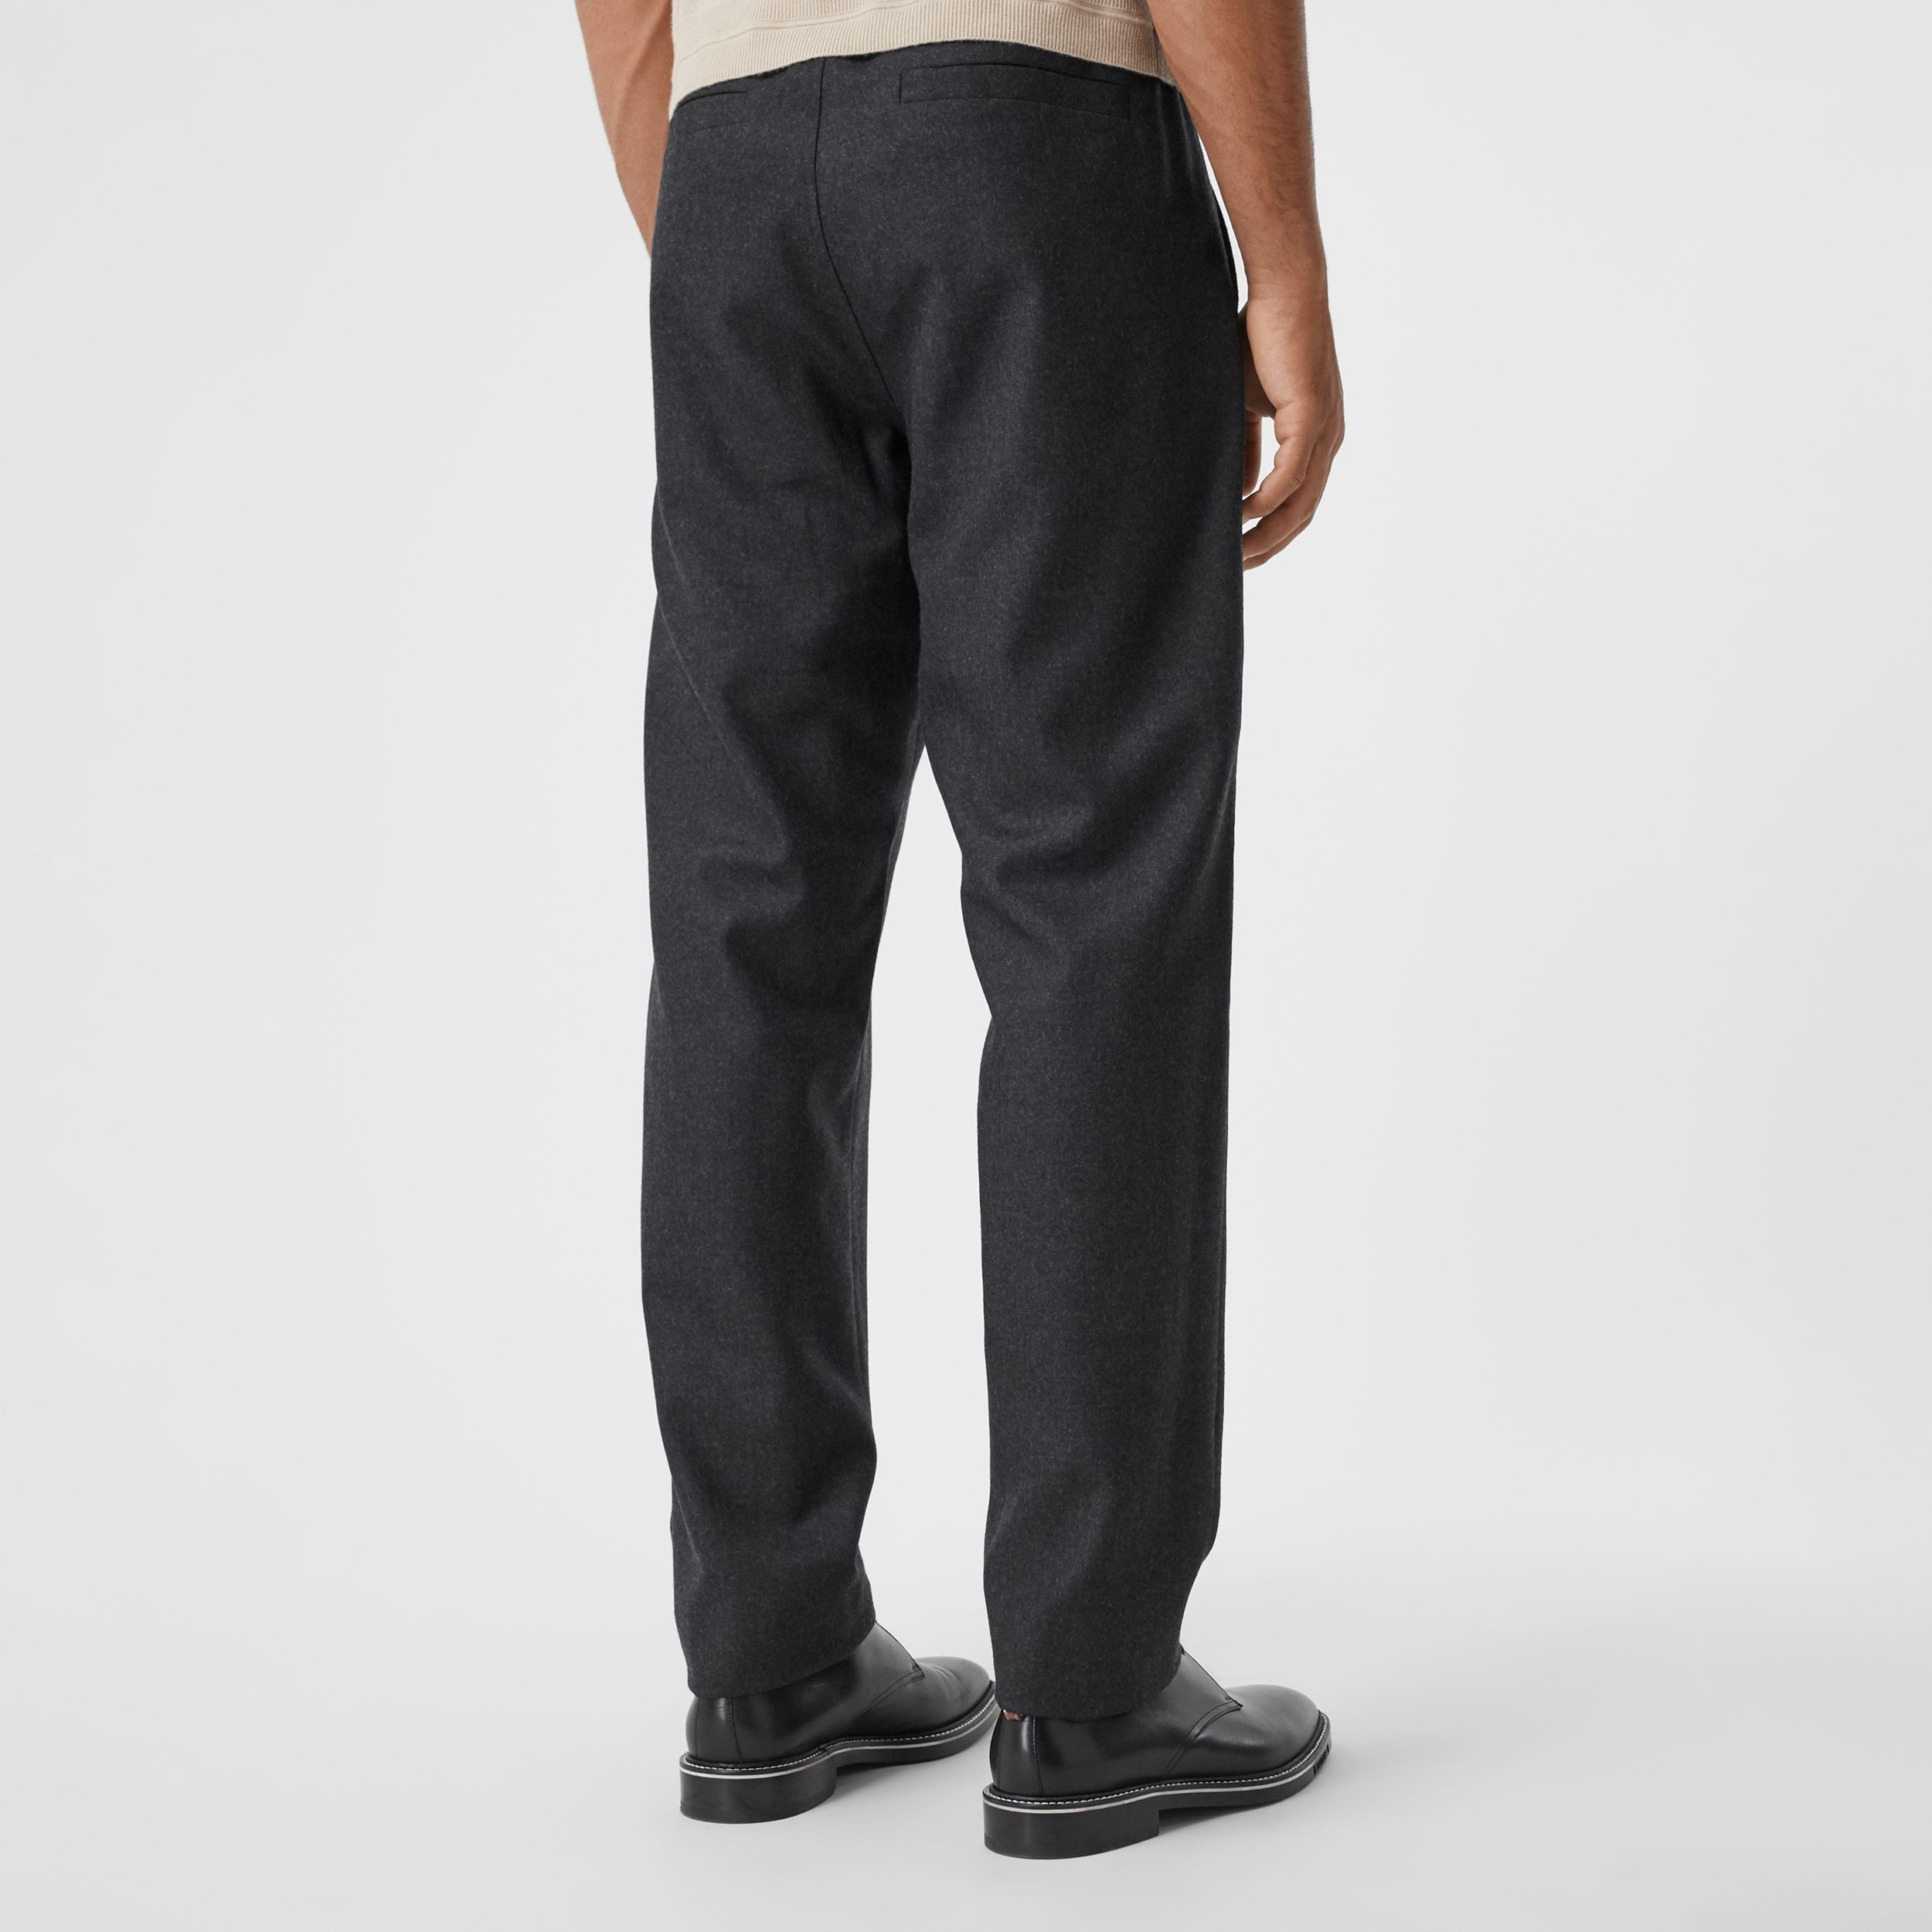 Monogram Motif Wool Jogging Pants in Charcoal Melange - Men | Burberry - 3